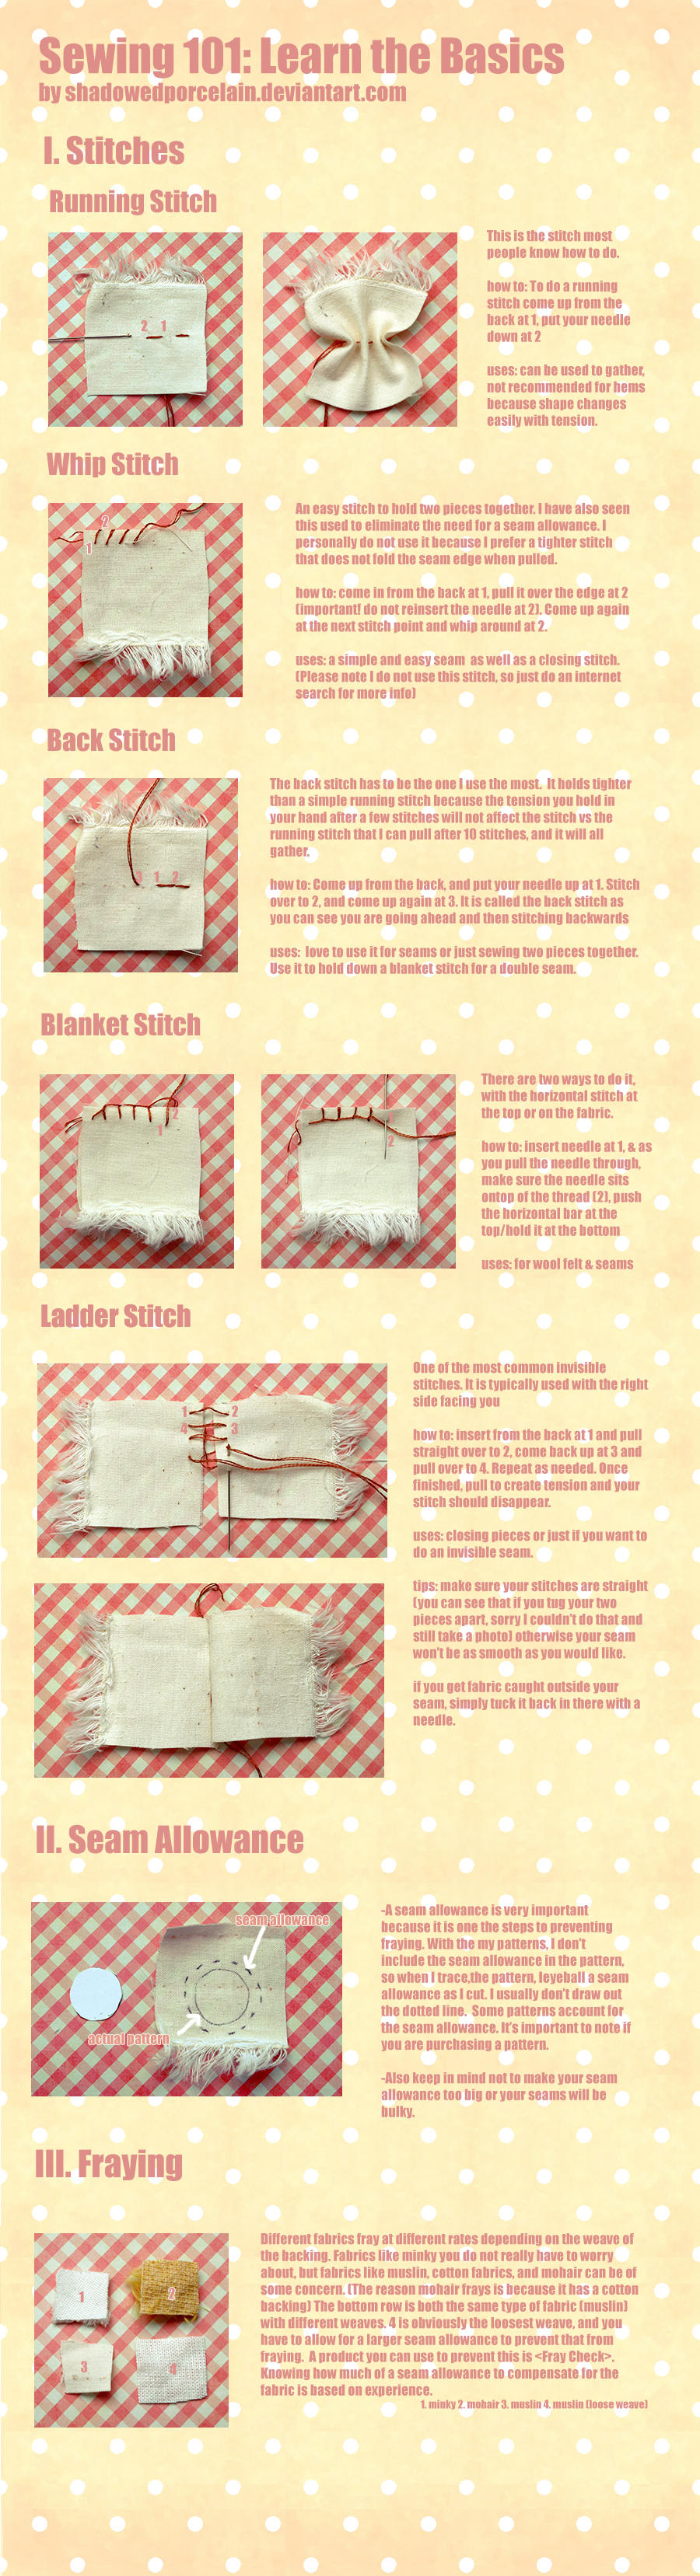 Sewing 101 by ShadowedPorcelain